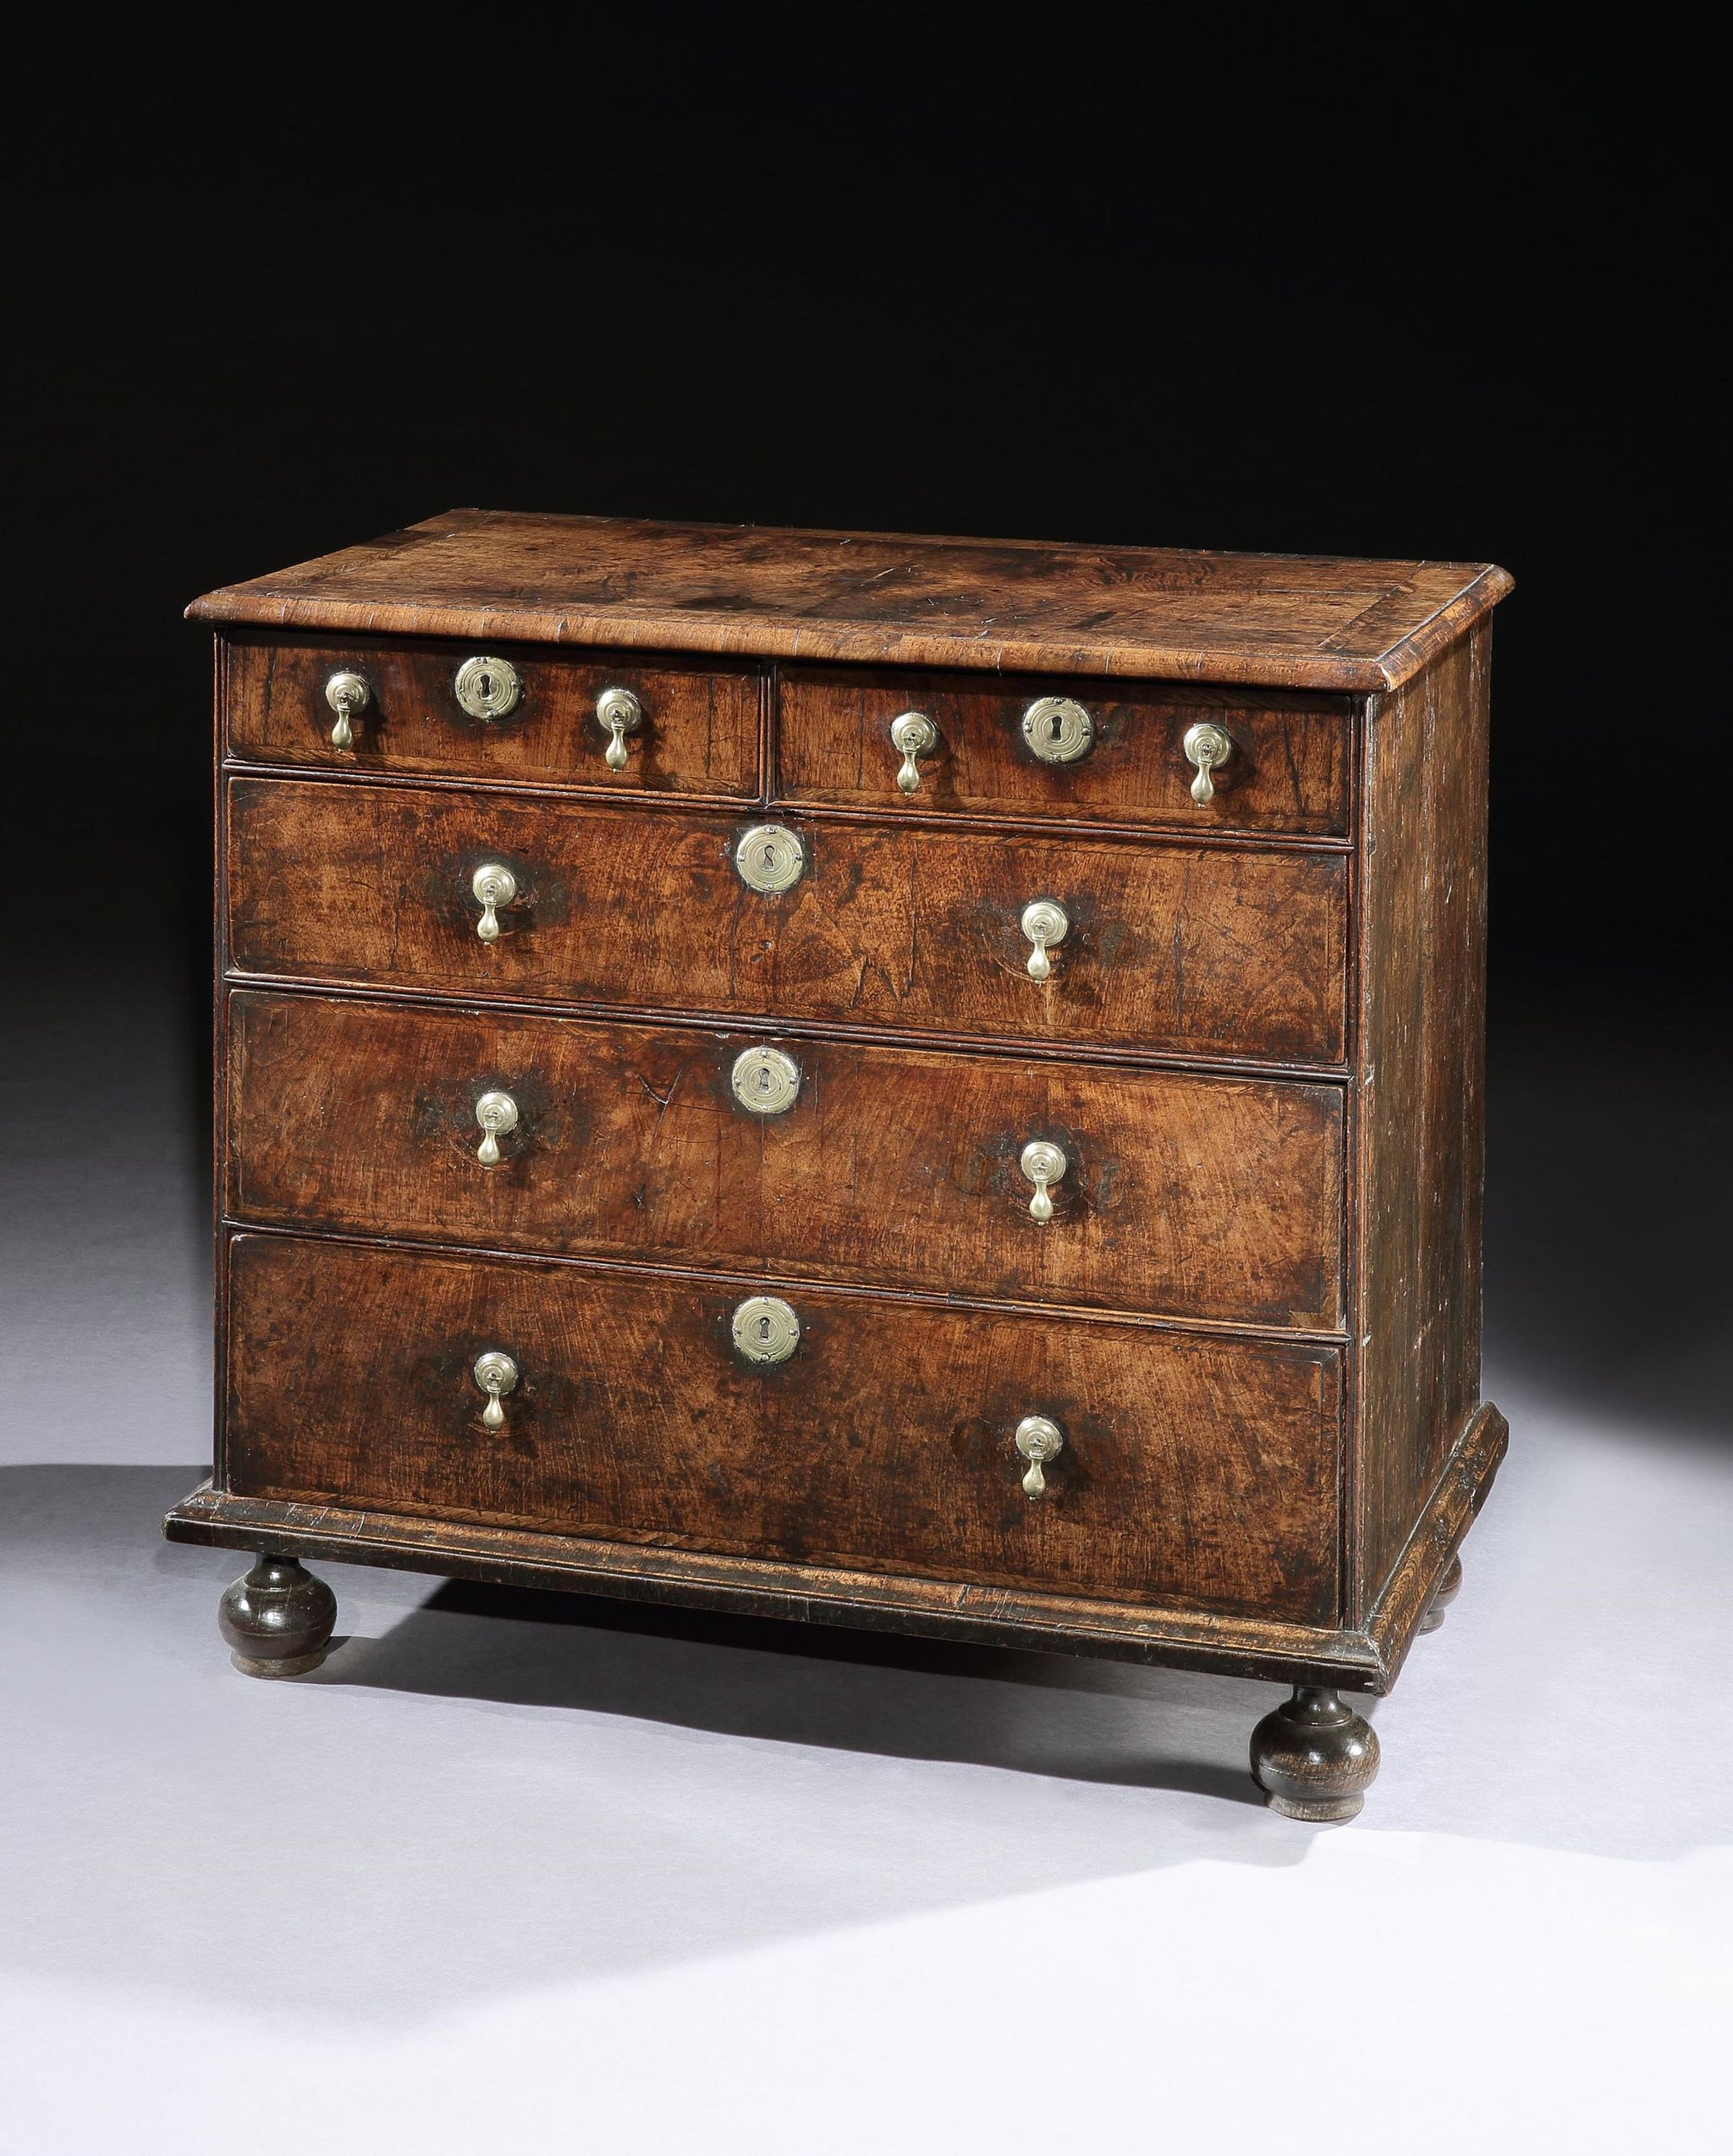 Queen Anne Period Chest of Two Short and Three Long Drawers